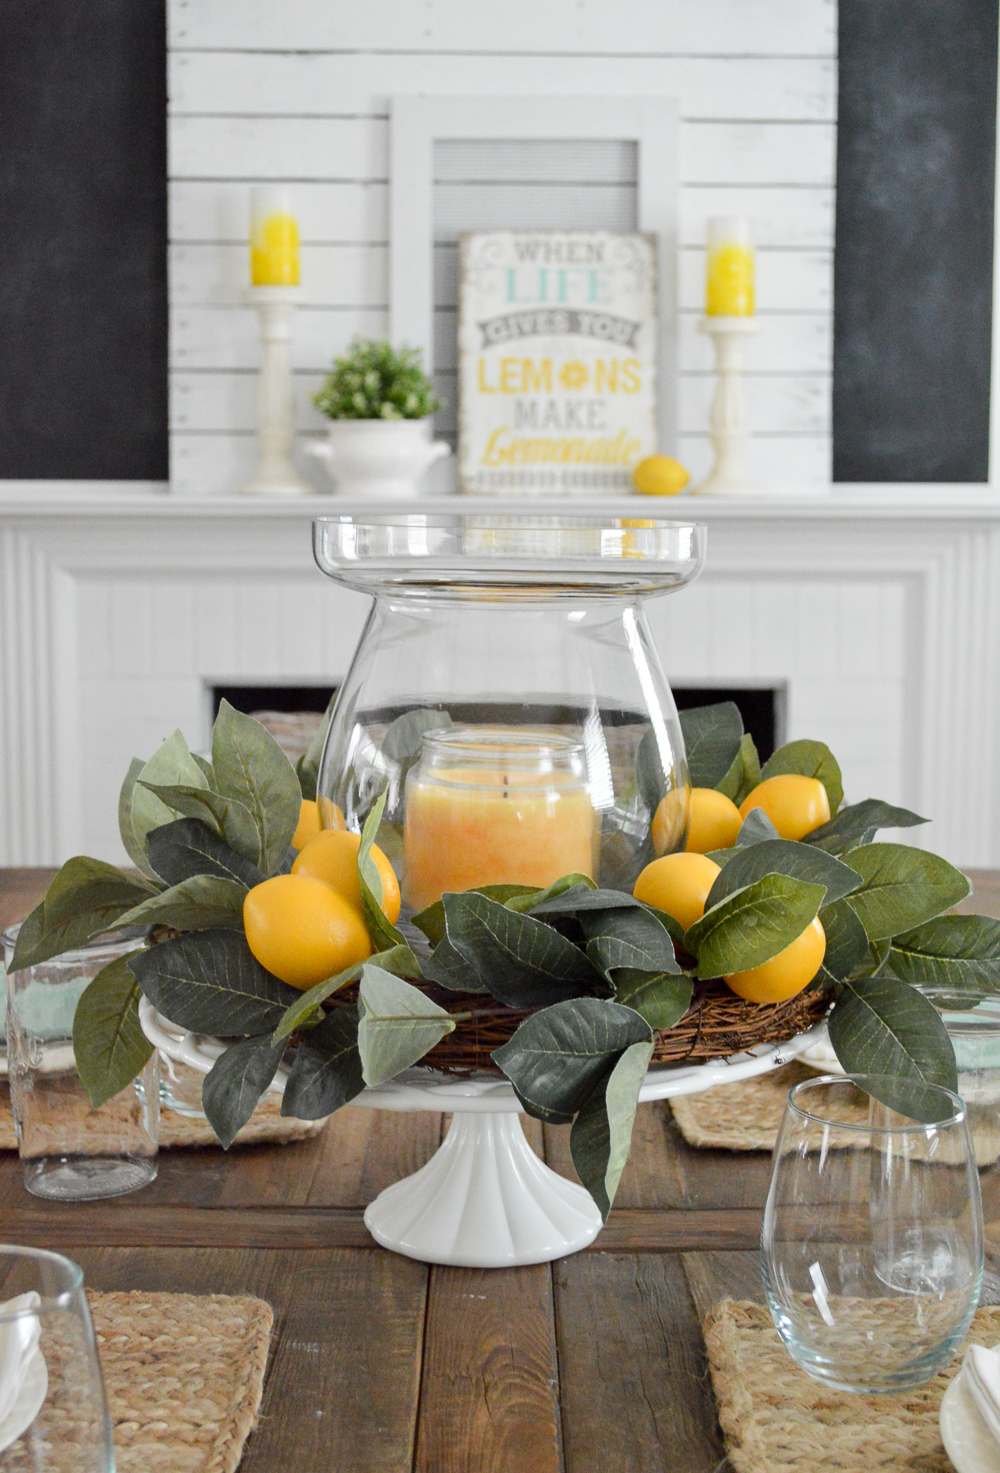 Vintage Milk Glass And Lemon Wreath Centerpiece